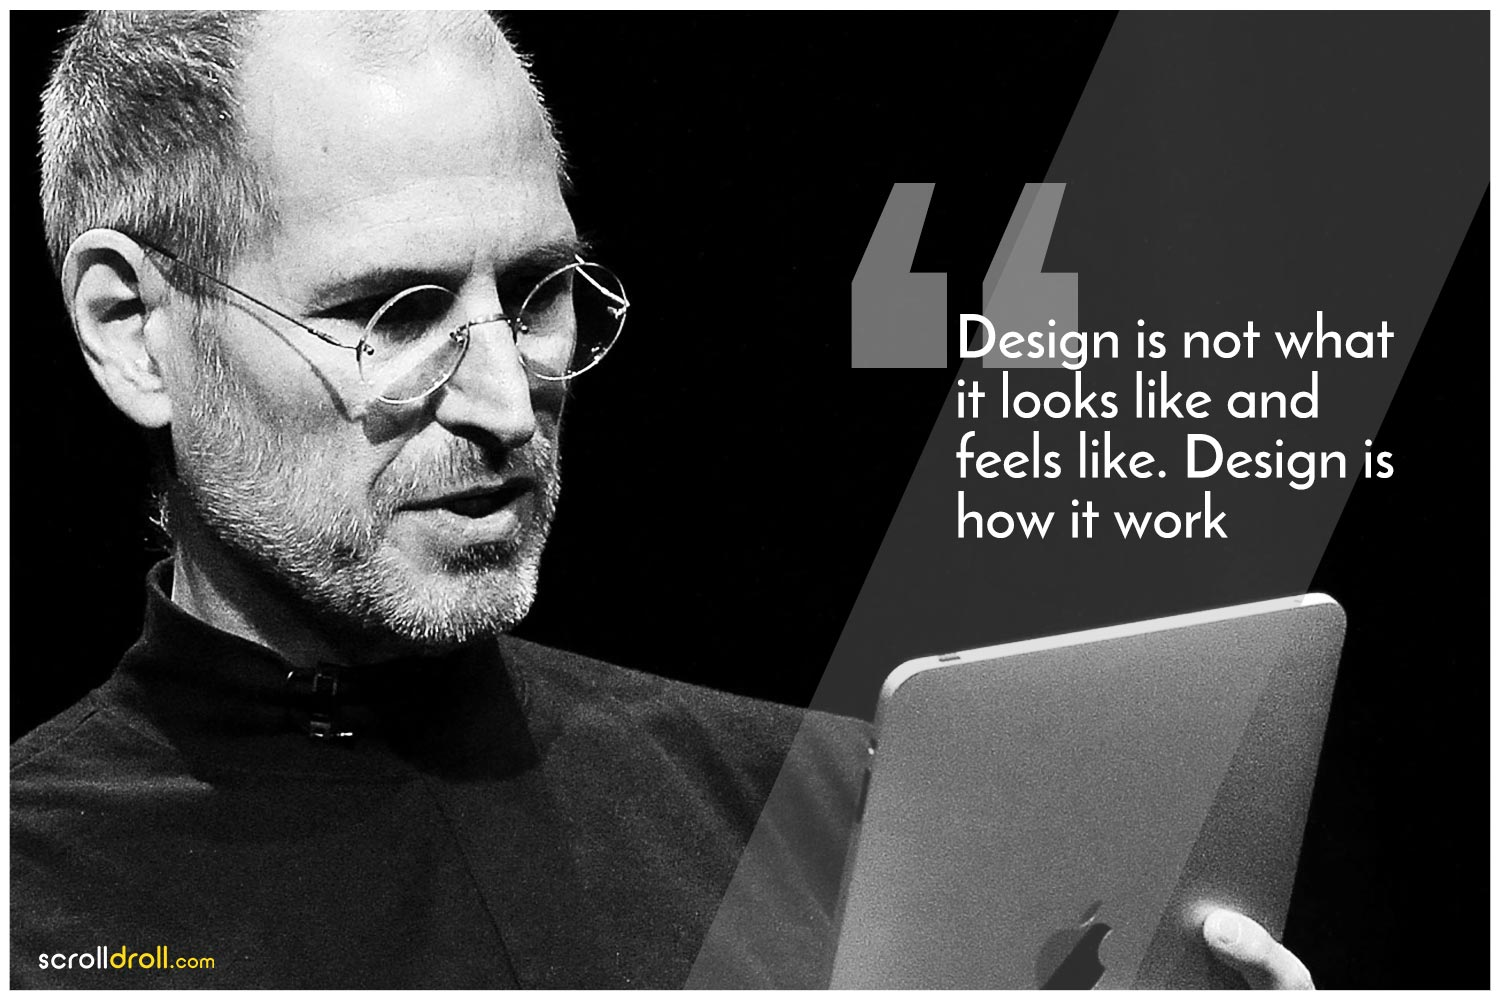 -Steve Jobs Quotes-Design is not what it looks like and feels like. Design is how it work